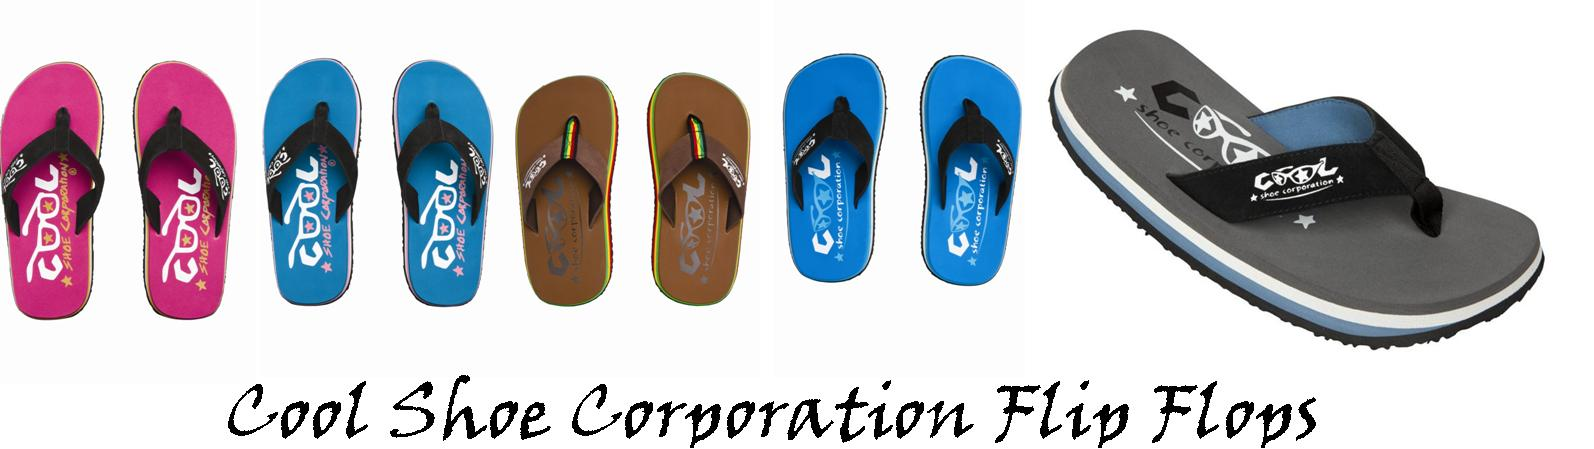 cool shoe corporation flip flops